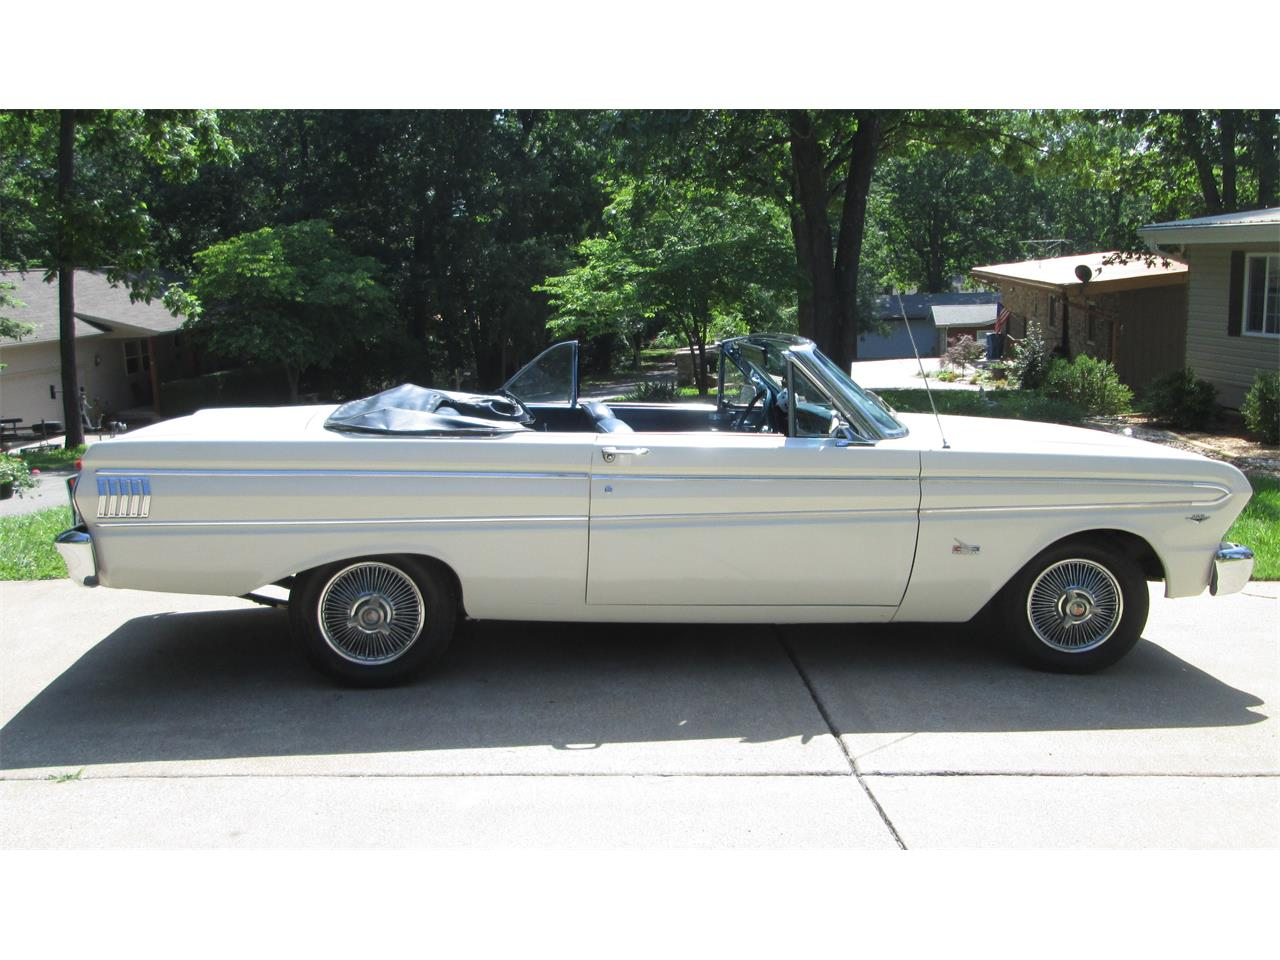 Large Picture of Classic 1964 Falcon located in Missouri - $14,500.00 Offered by a Private Seller - Q4YA